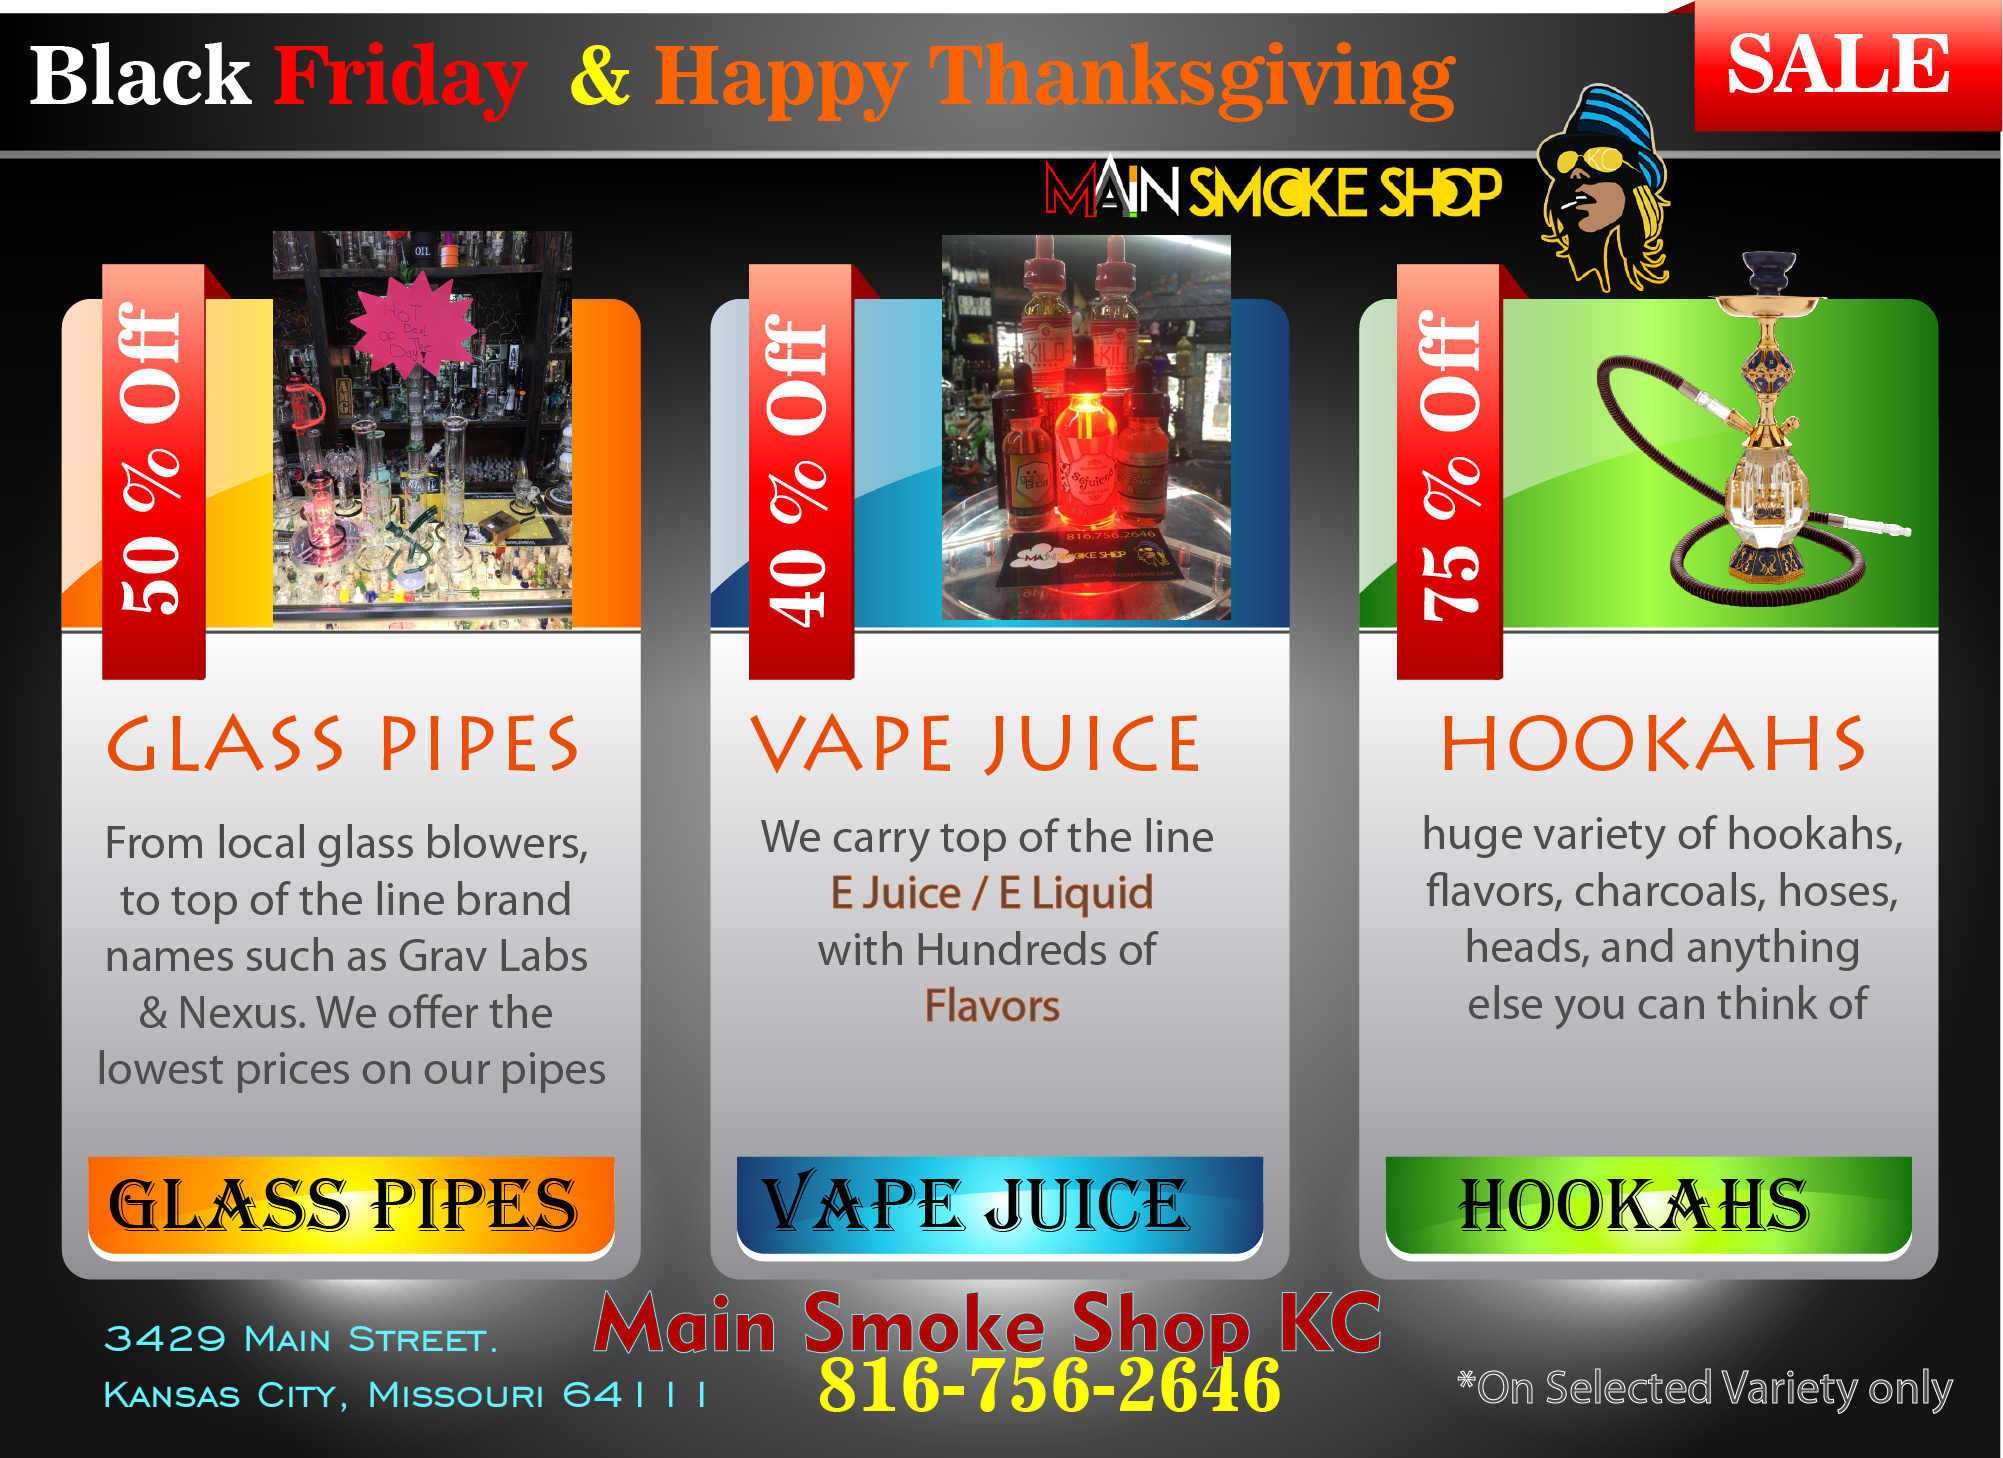 Black Friday & Happy Thanksgiving Sale . . . . Main Smoke Shop KC. 816-756-2646 3429 Main Street. Kansas City, Missouri 64111 www.mainsmokeshop.com